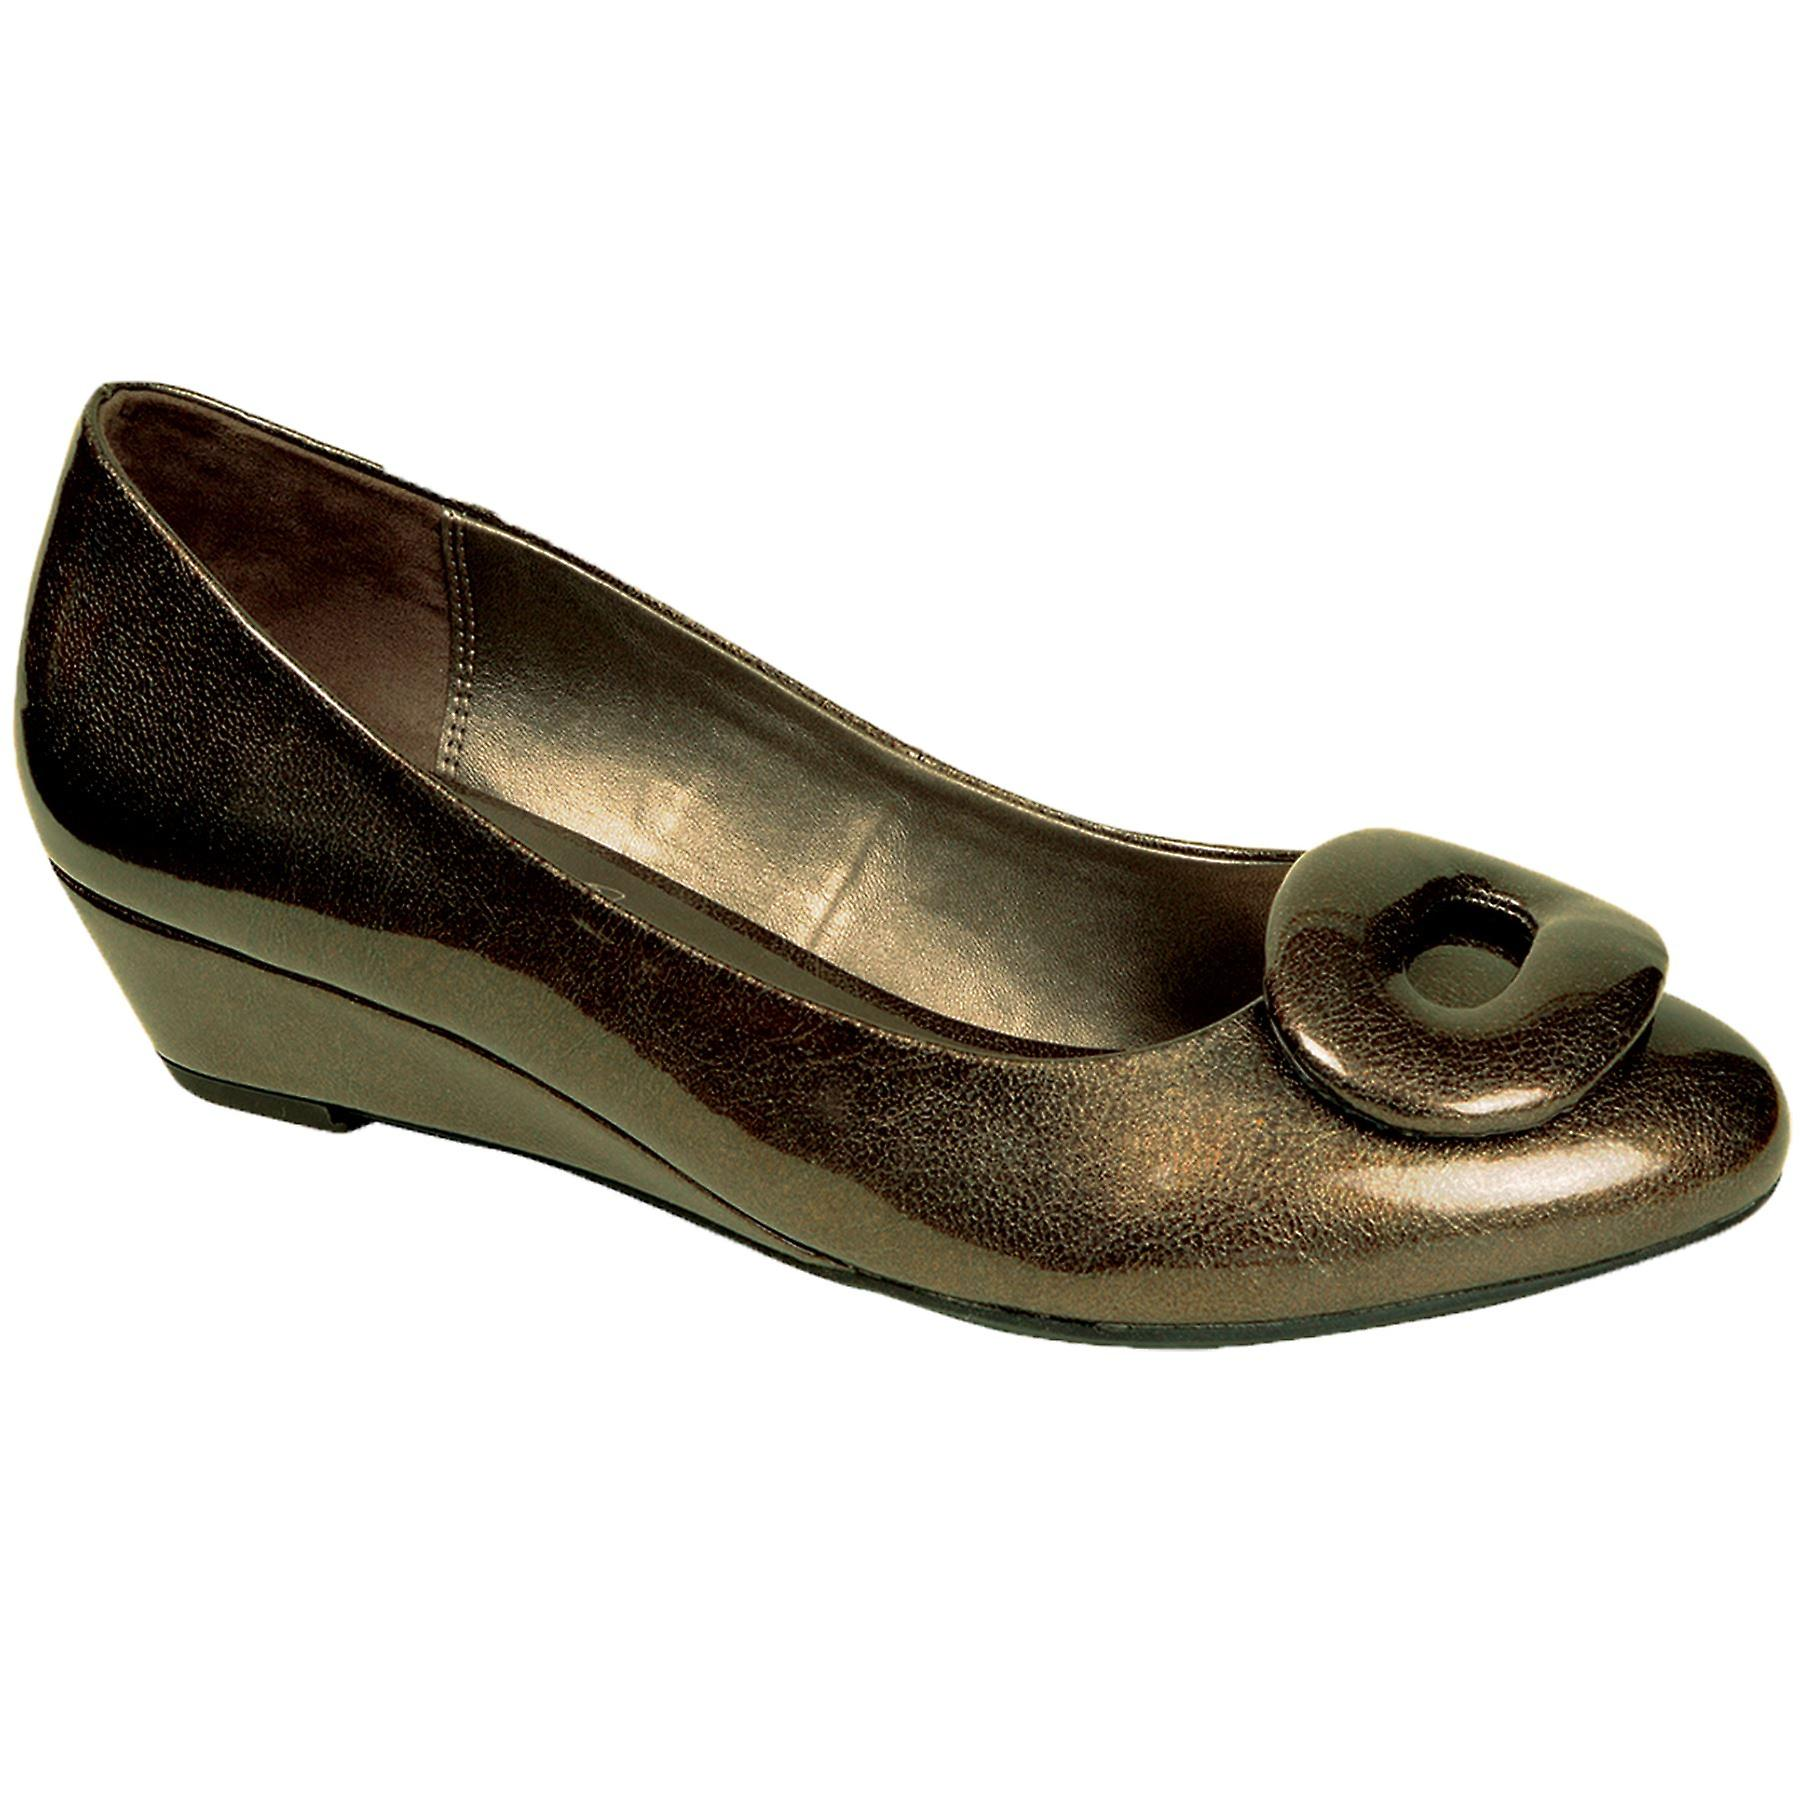 Ladies Patent Shiny Oval Buckle Front Slip On Women's Low Wedge Heels Shoes